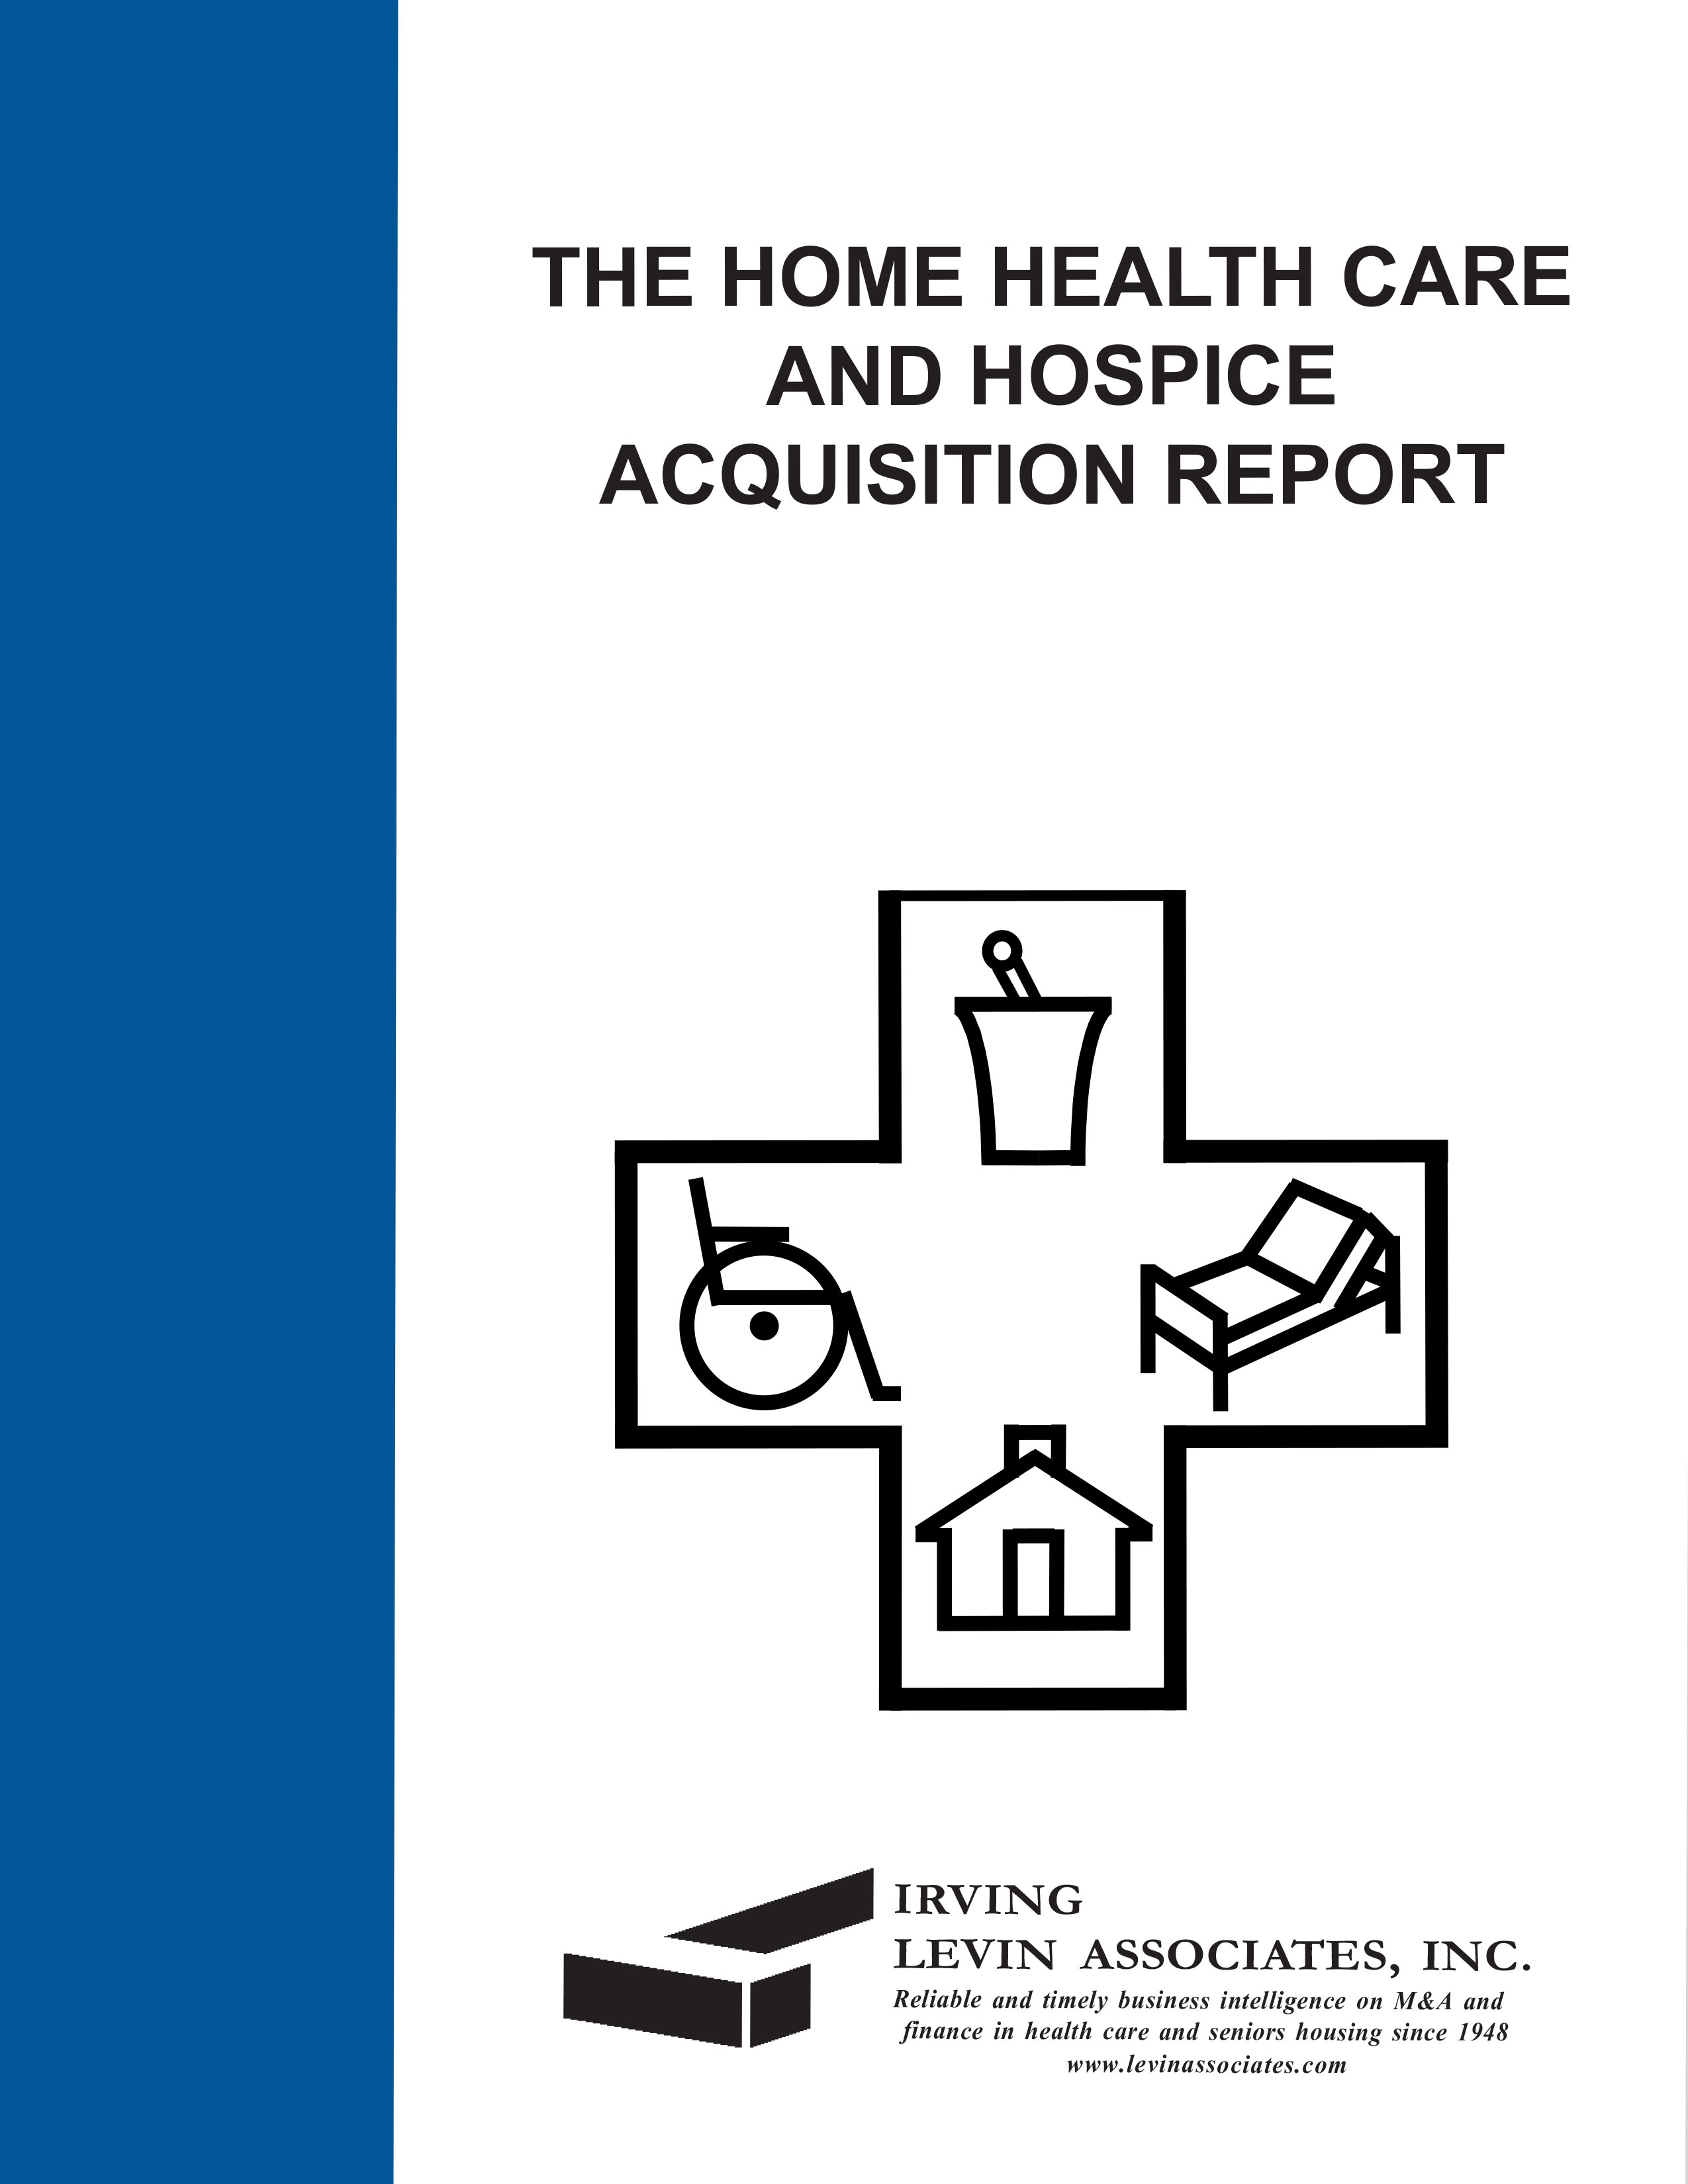 Home Health Care and Hospice Acquisition Report, 2014